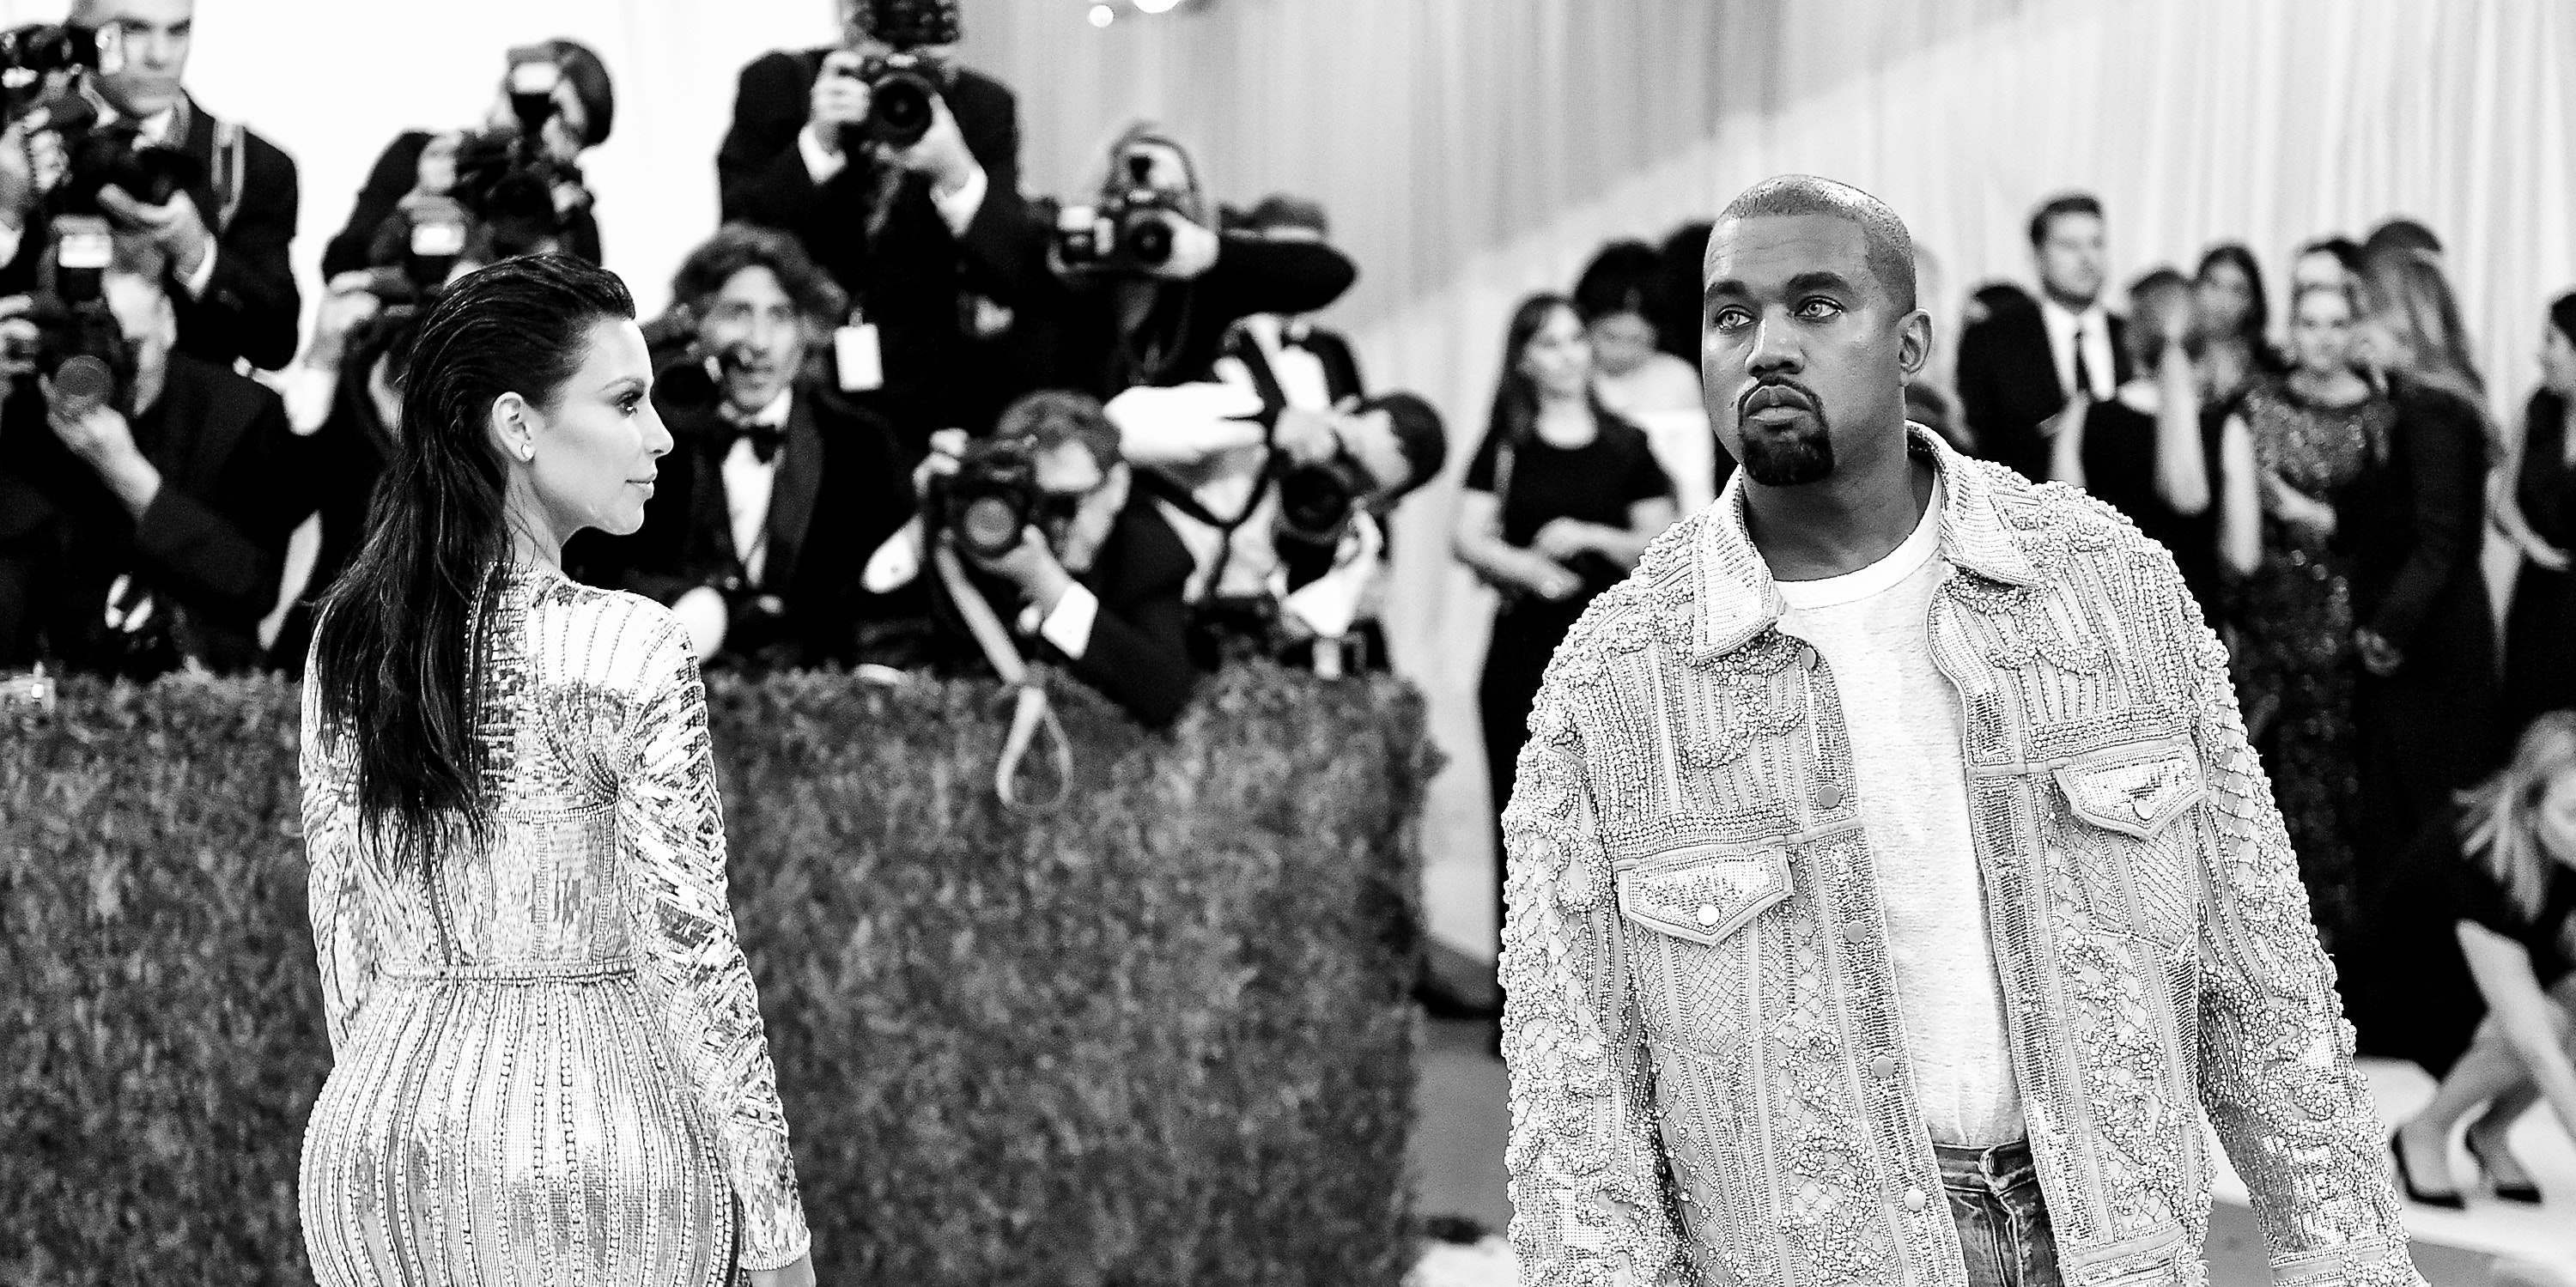 NEW YORK, NY - MAY 02:  (EDITORS NOTE: Image has been converted to black and white.) Kim Kardashian (L) and Kanye West attend the 'Manus x Machina: Fashion In An Age Of Technology' Costume Institute Gala at Metropolitan Museum of Art on May 2, 2016 in New York City.  (Photo by Mike Coppola/Getty Images for People.com)